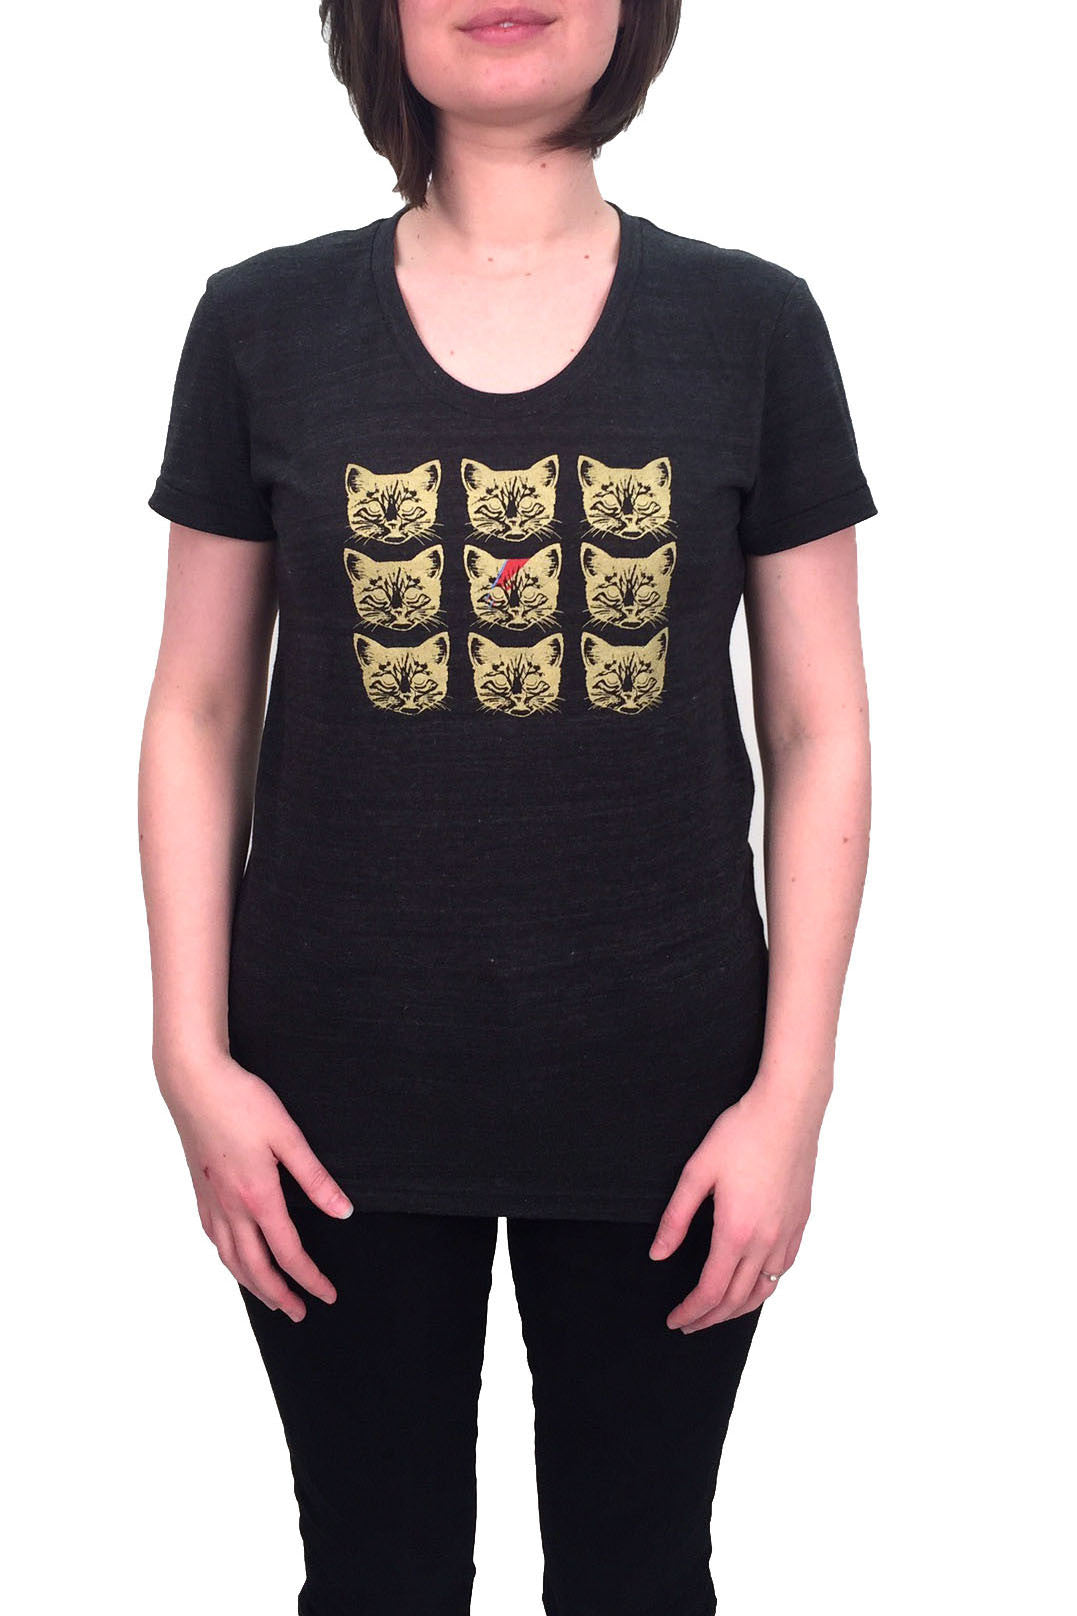 Charcoal David Bowie inspired Kitty Stardust Tee. Women's size S to XL